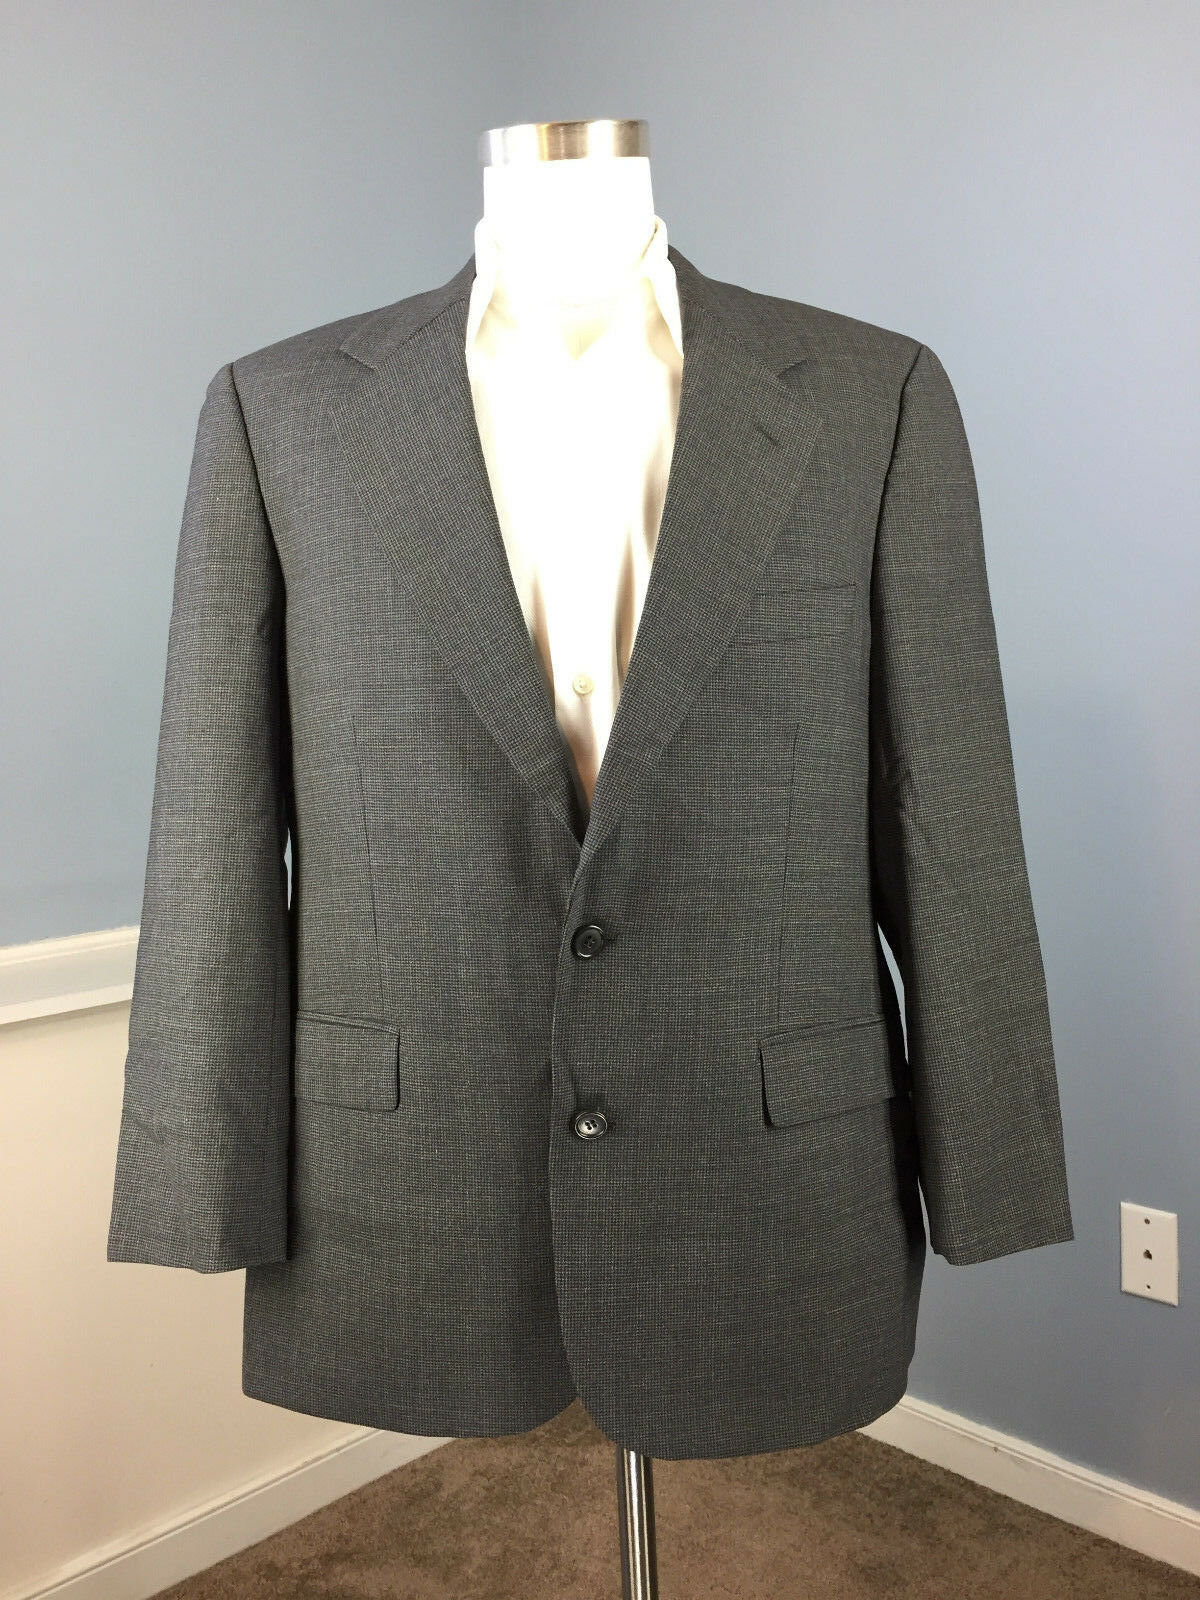 Brooks Brothers Brooksease Charcoal grau Suit 40 S Wool blend 36 W Excellent